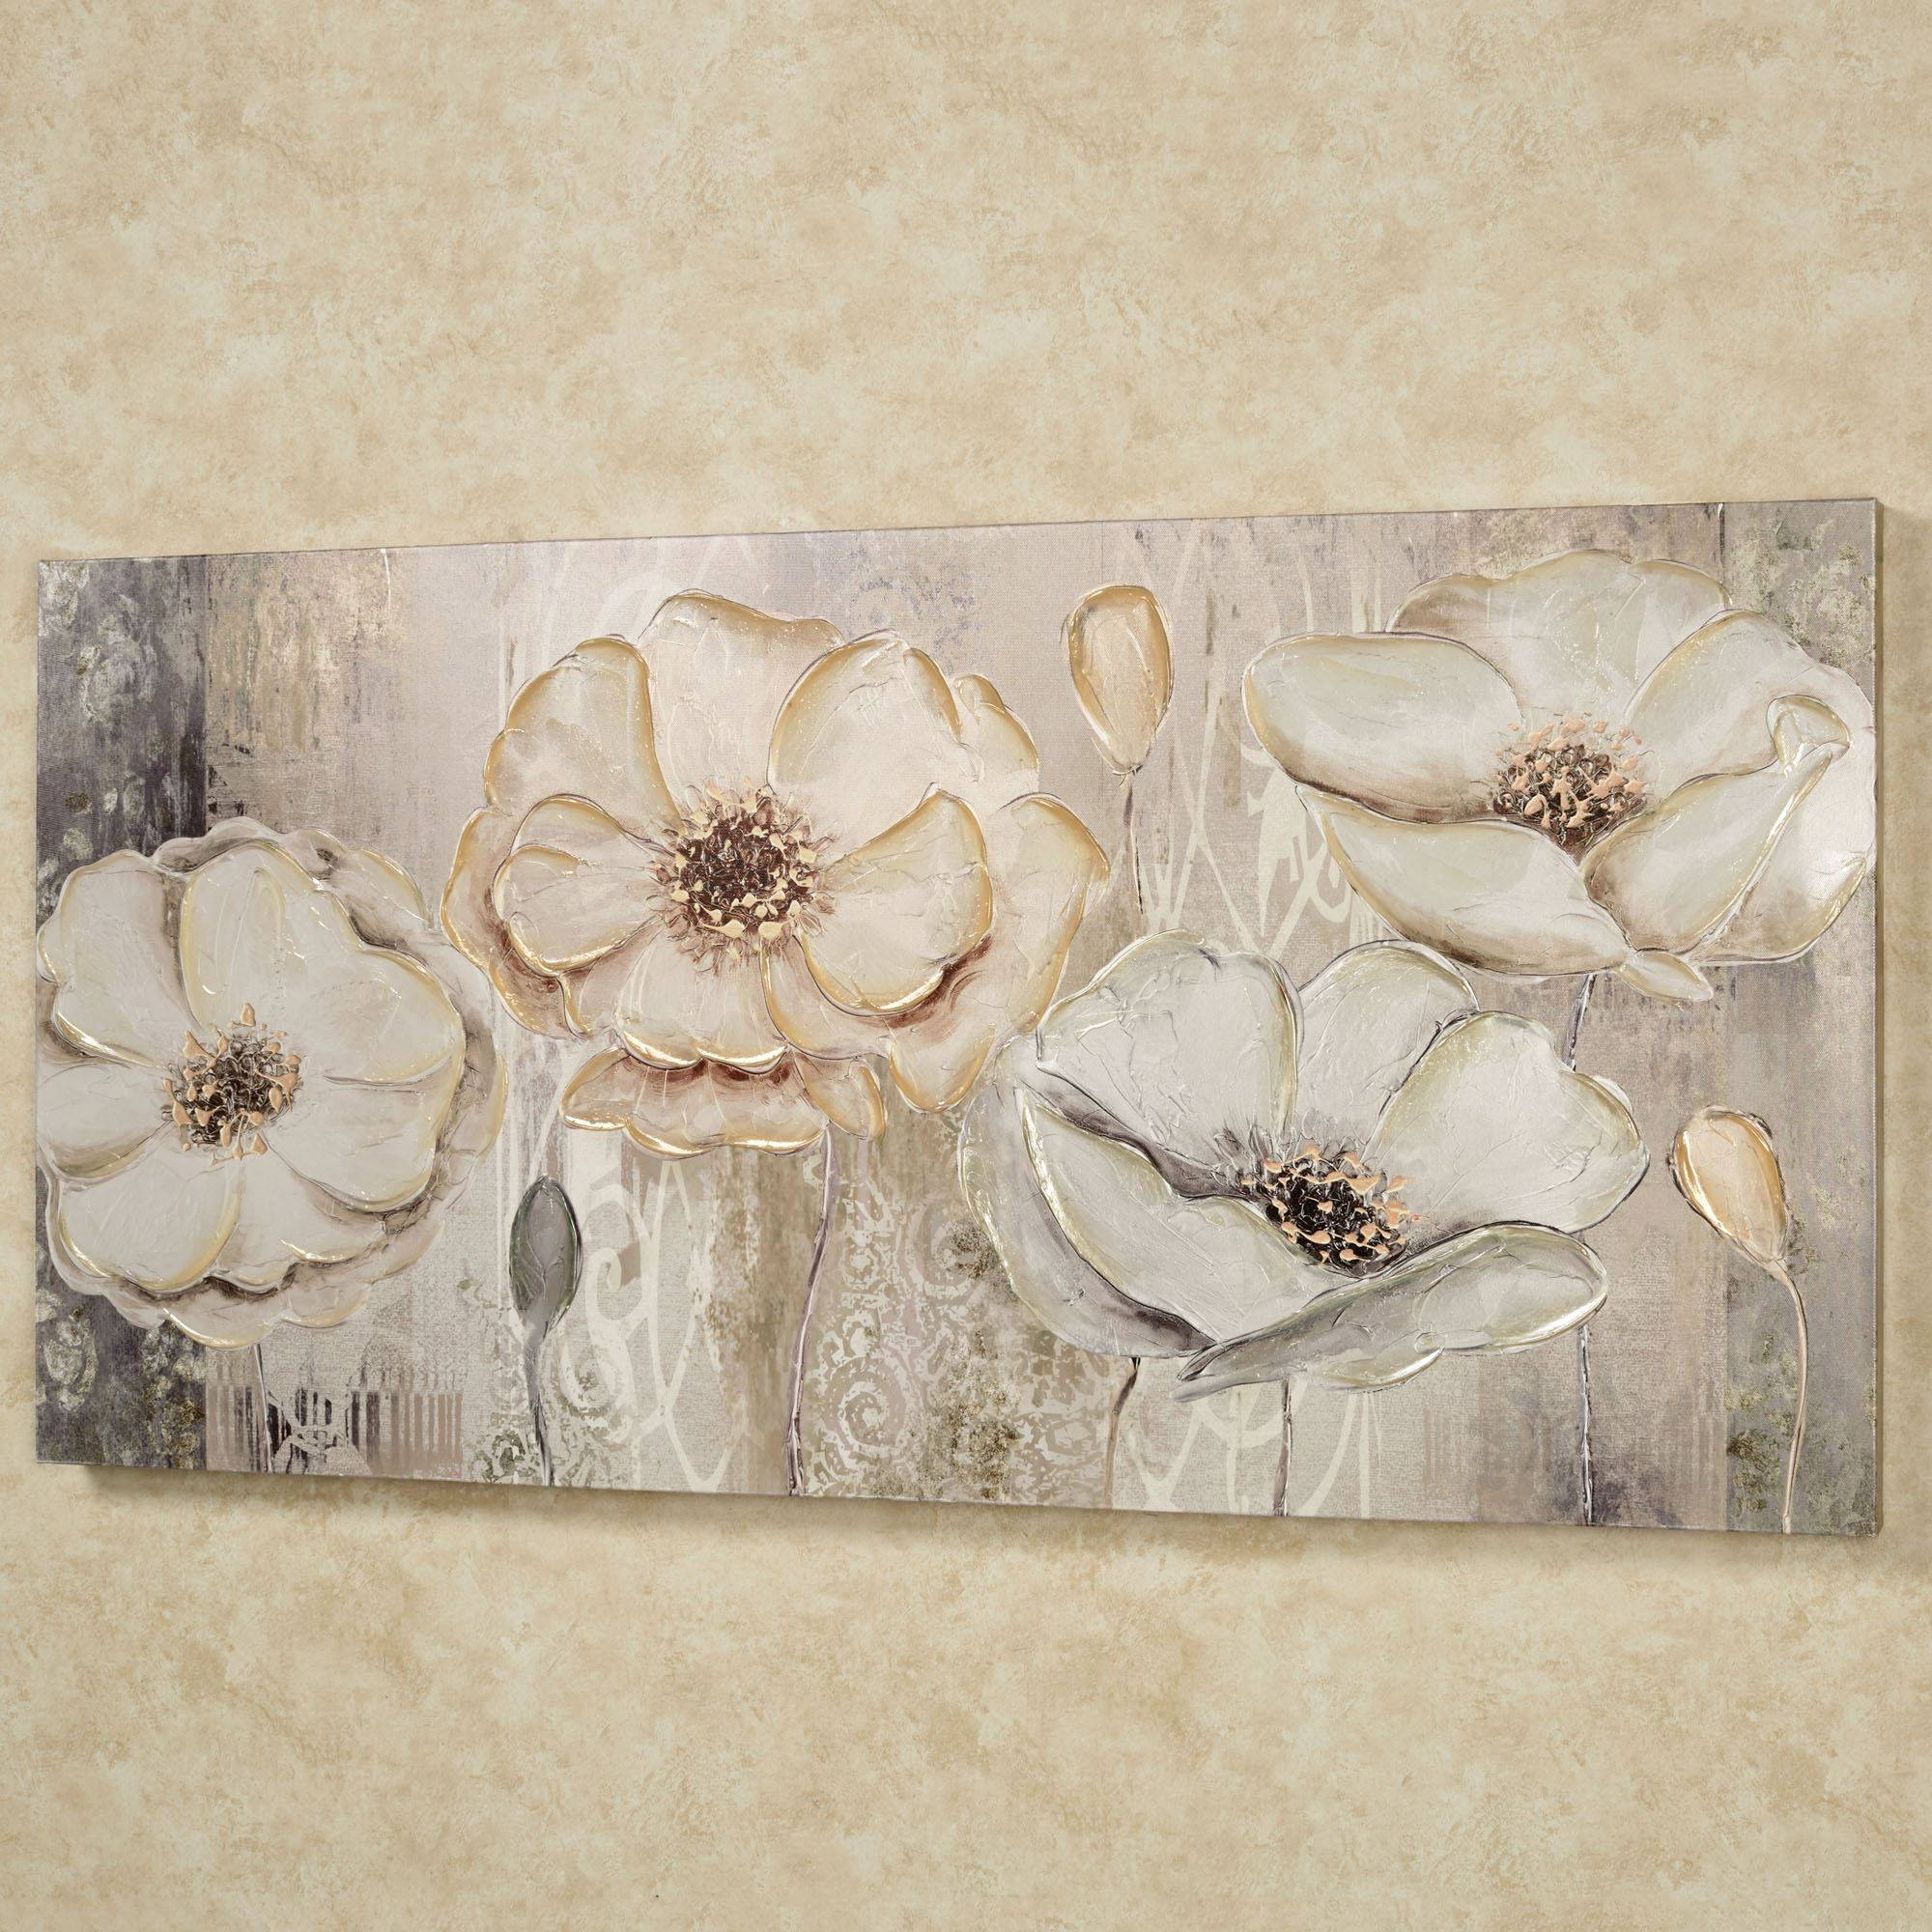 Floral Elegance Canvas Wall Art Within Most Popular Floral Wall Art Canvas (View 13 of 20)